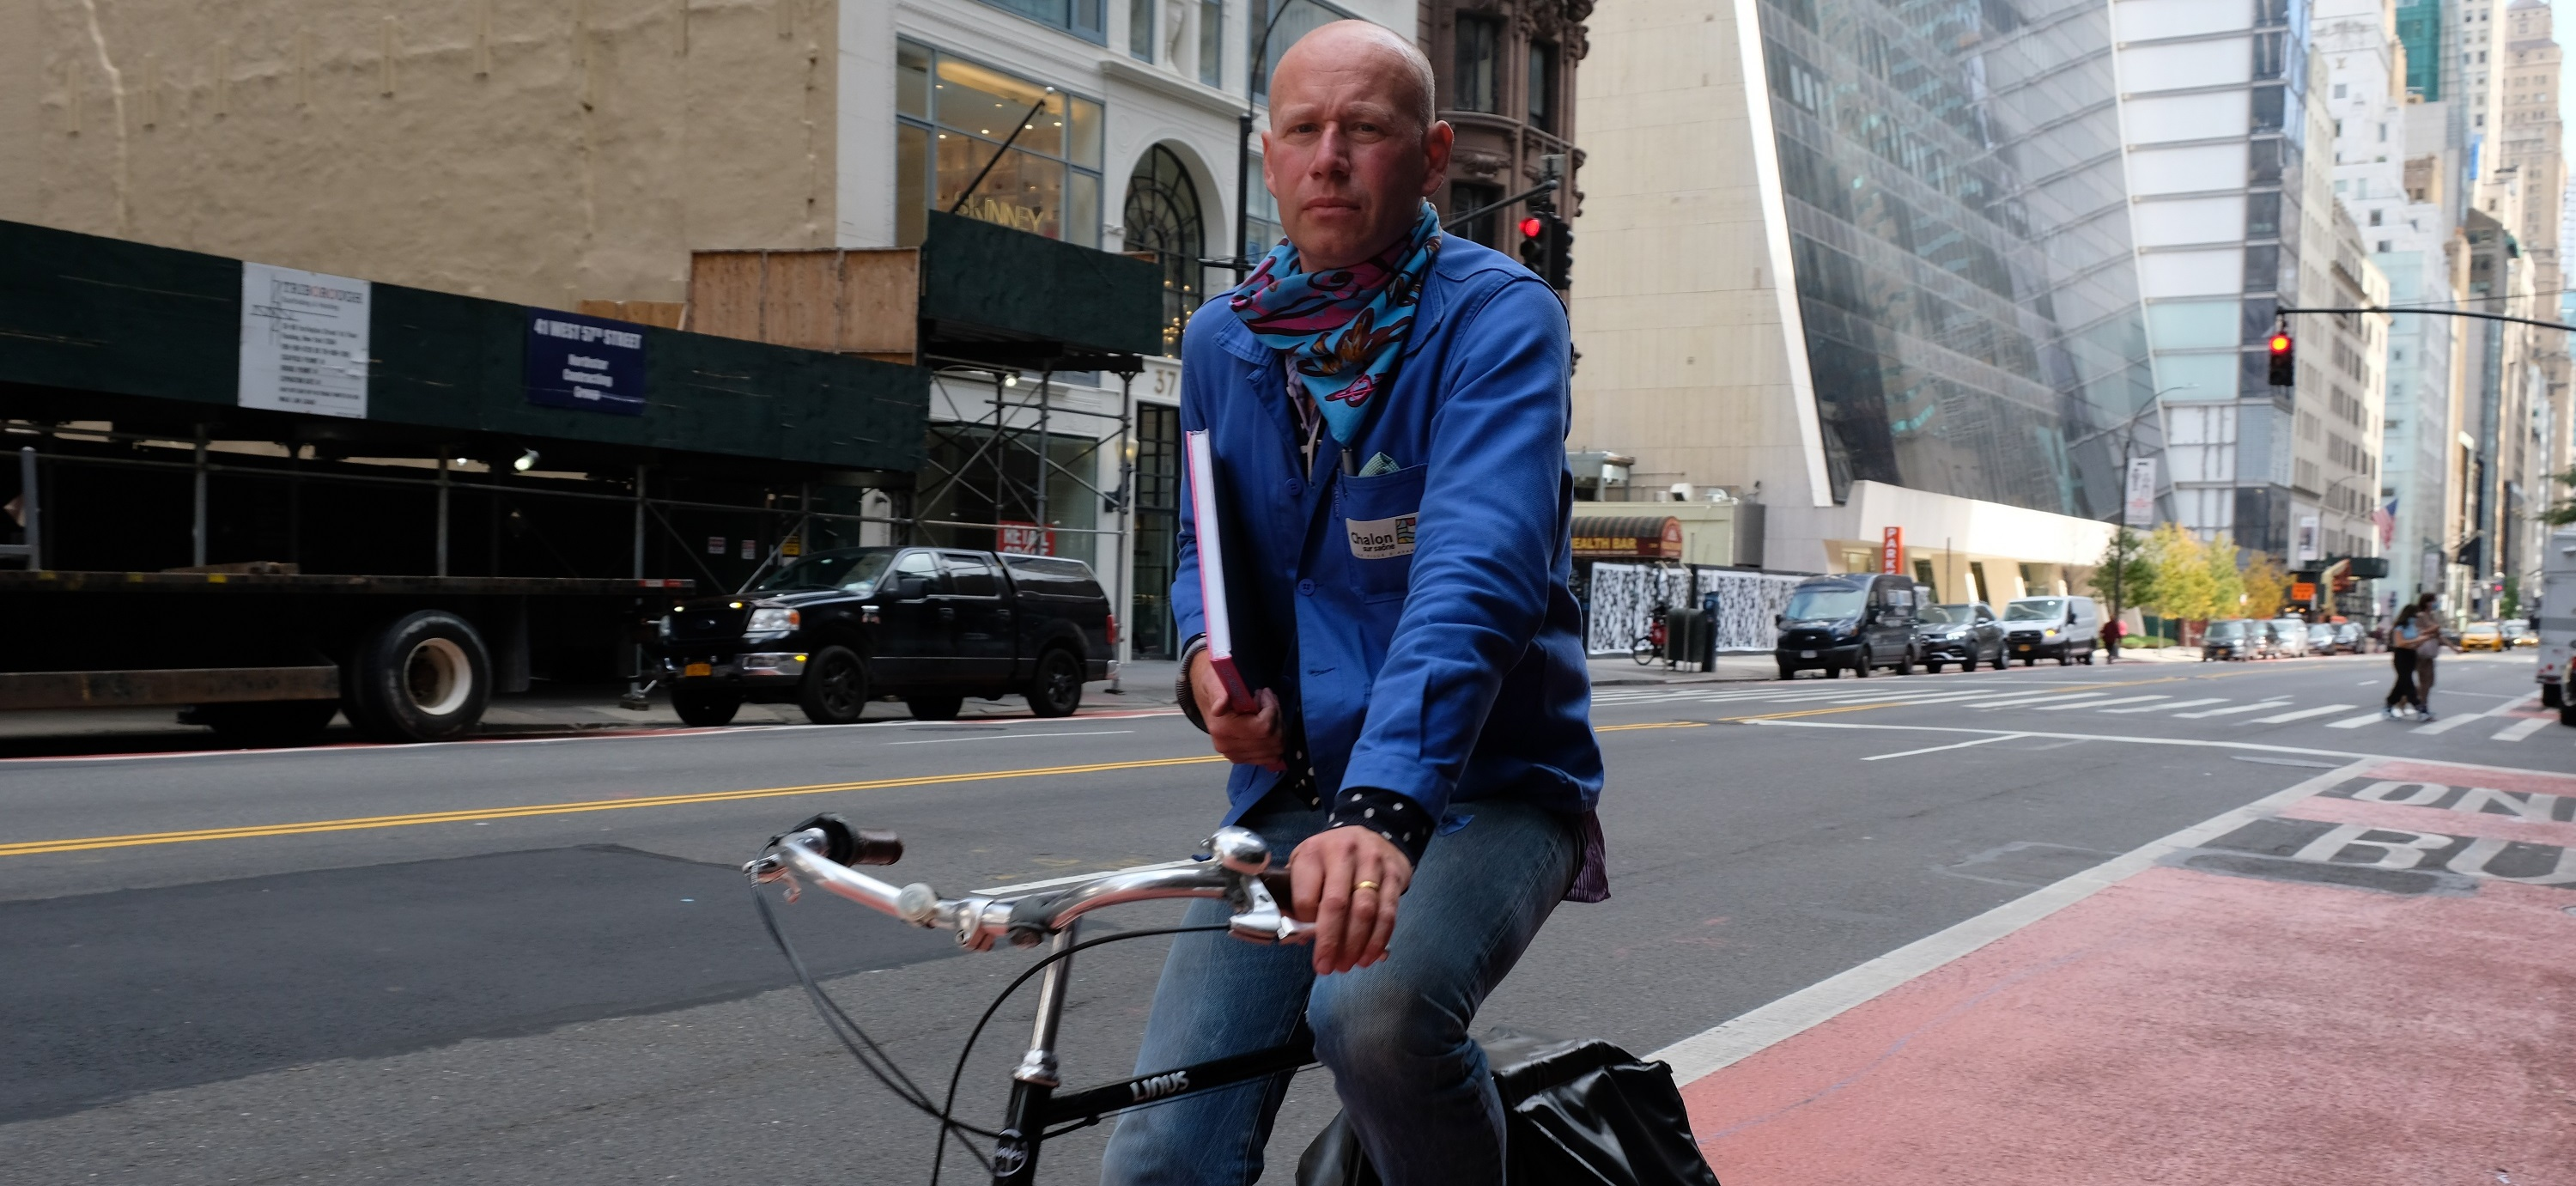 NYC Artist Delivers His Book in Person, on a Bike